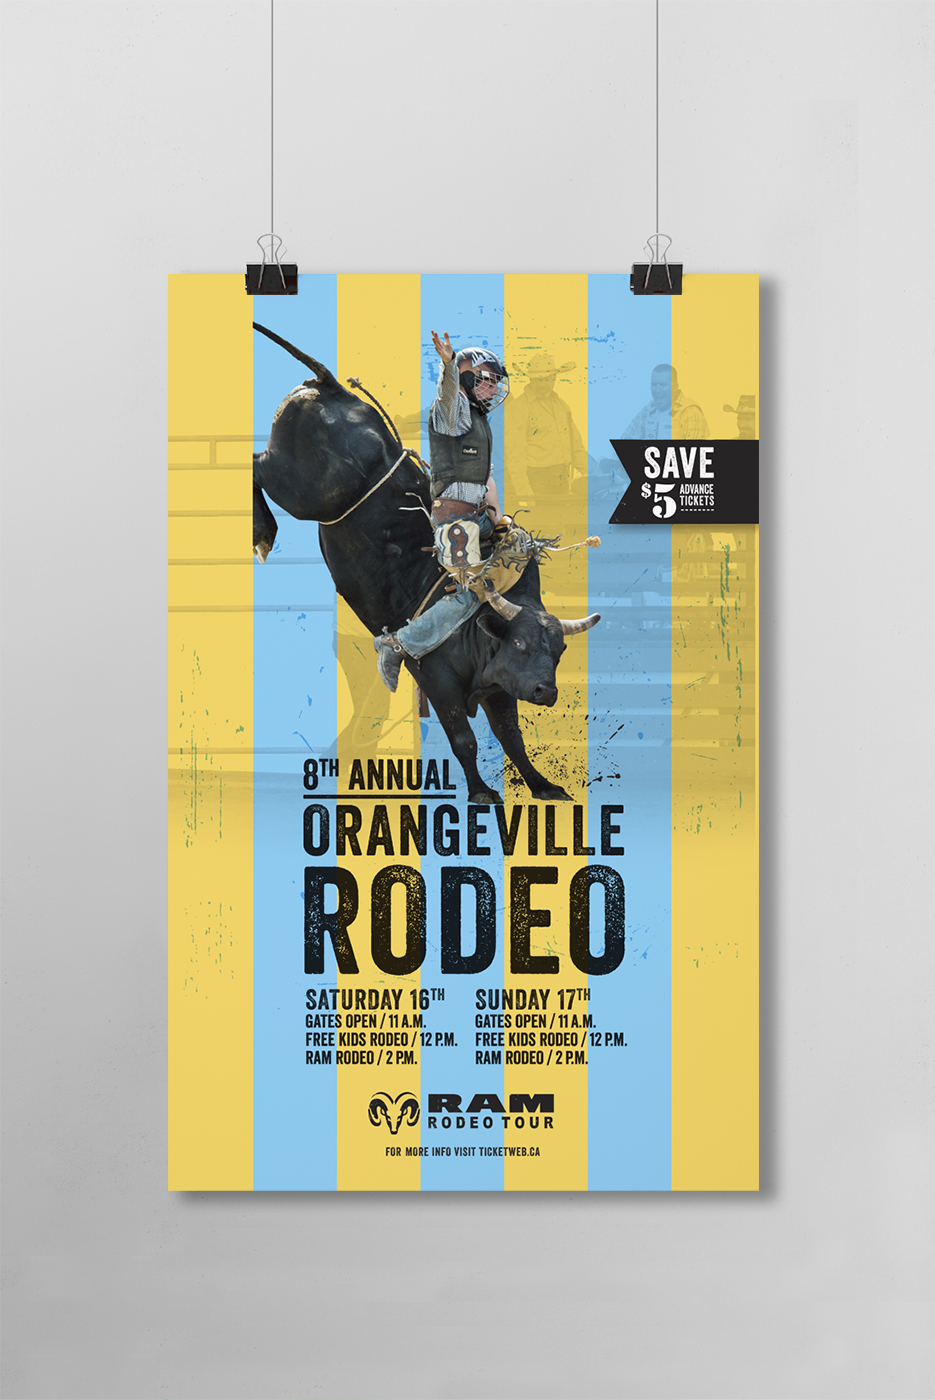 Orangeville Annual Rodeo Poster design featuring a man riding a bull.